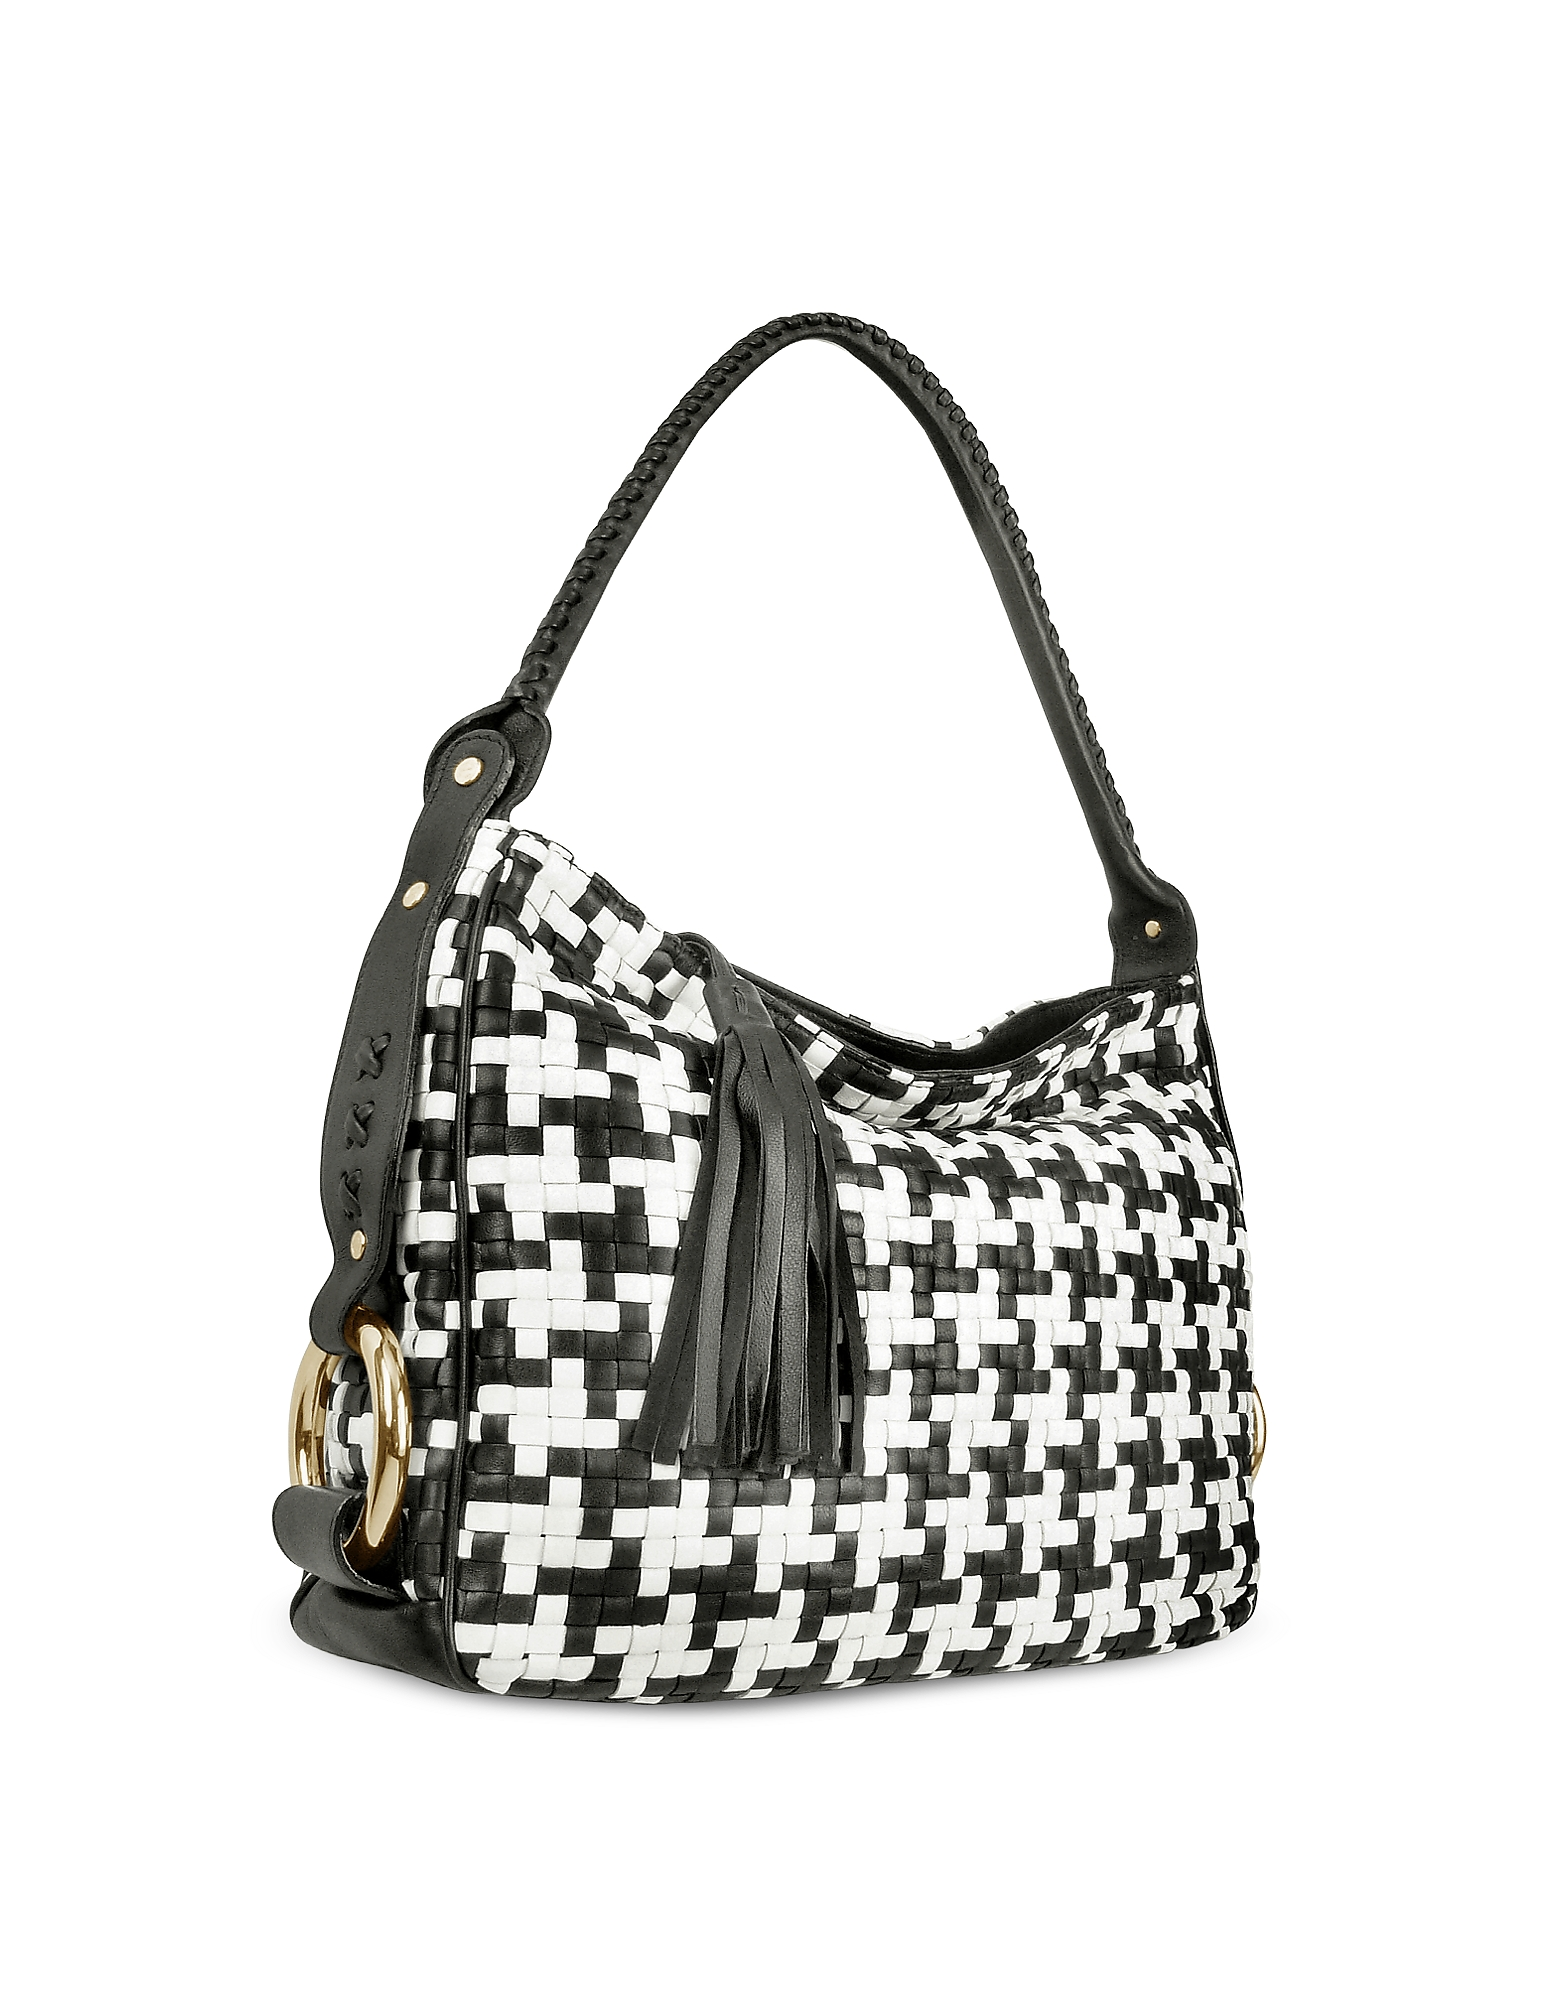 Black and White Houndstooth Woven Leather Tote Bag